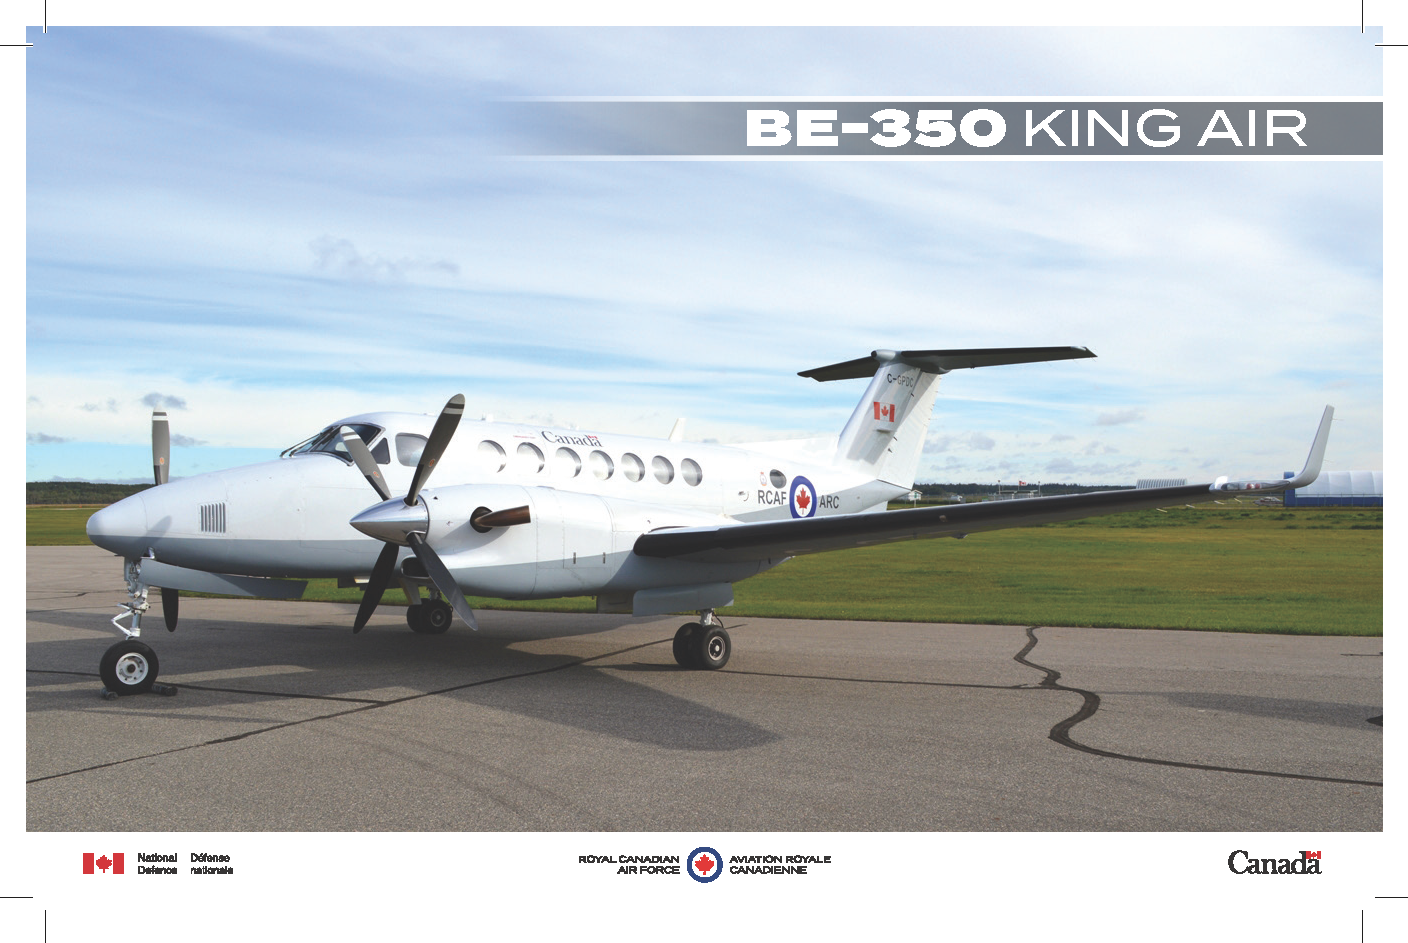 BE-350 King Air fact sheet image